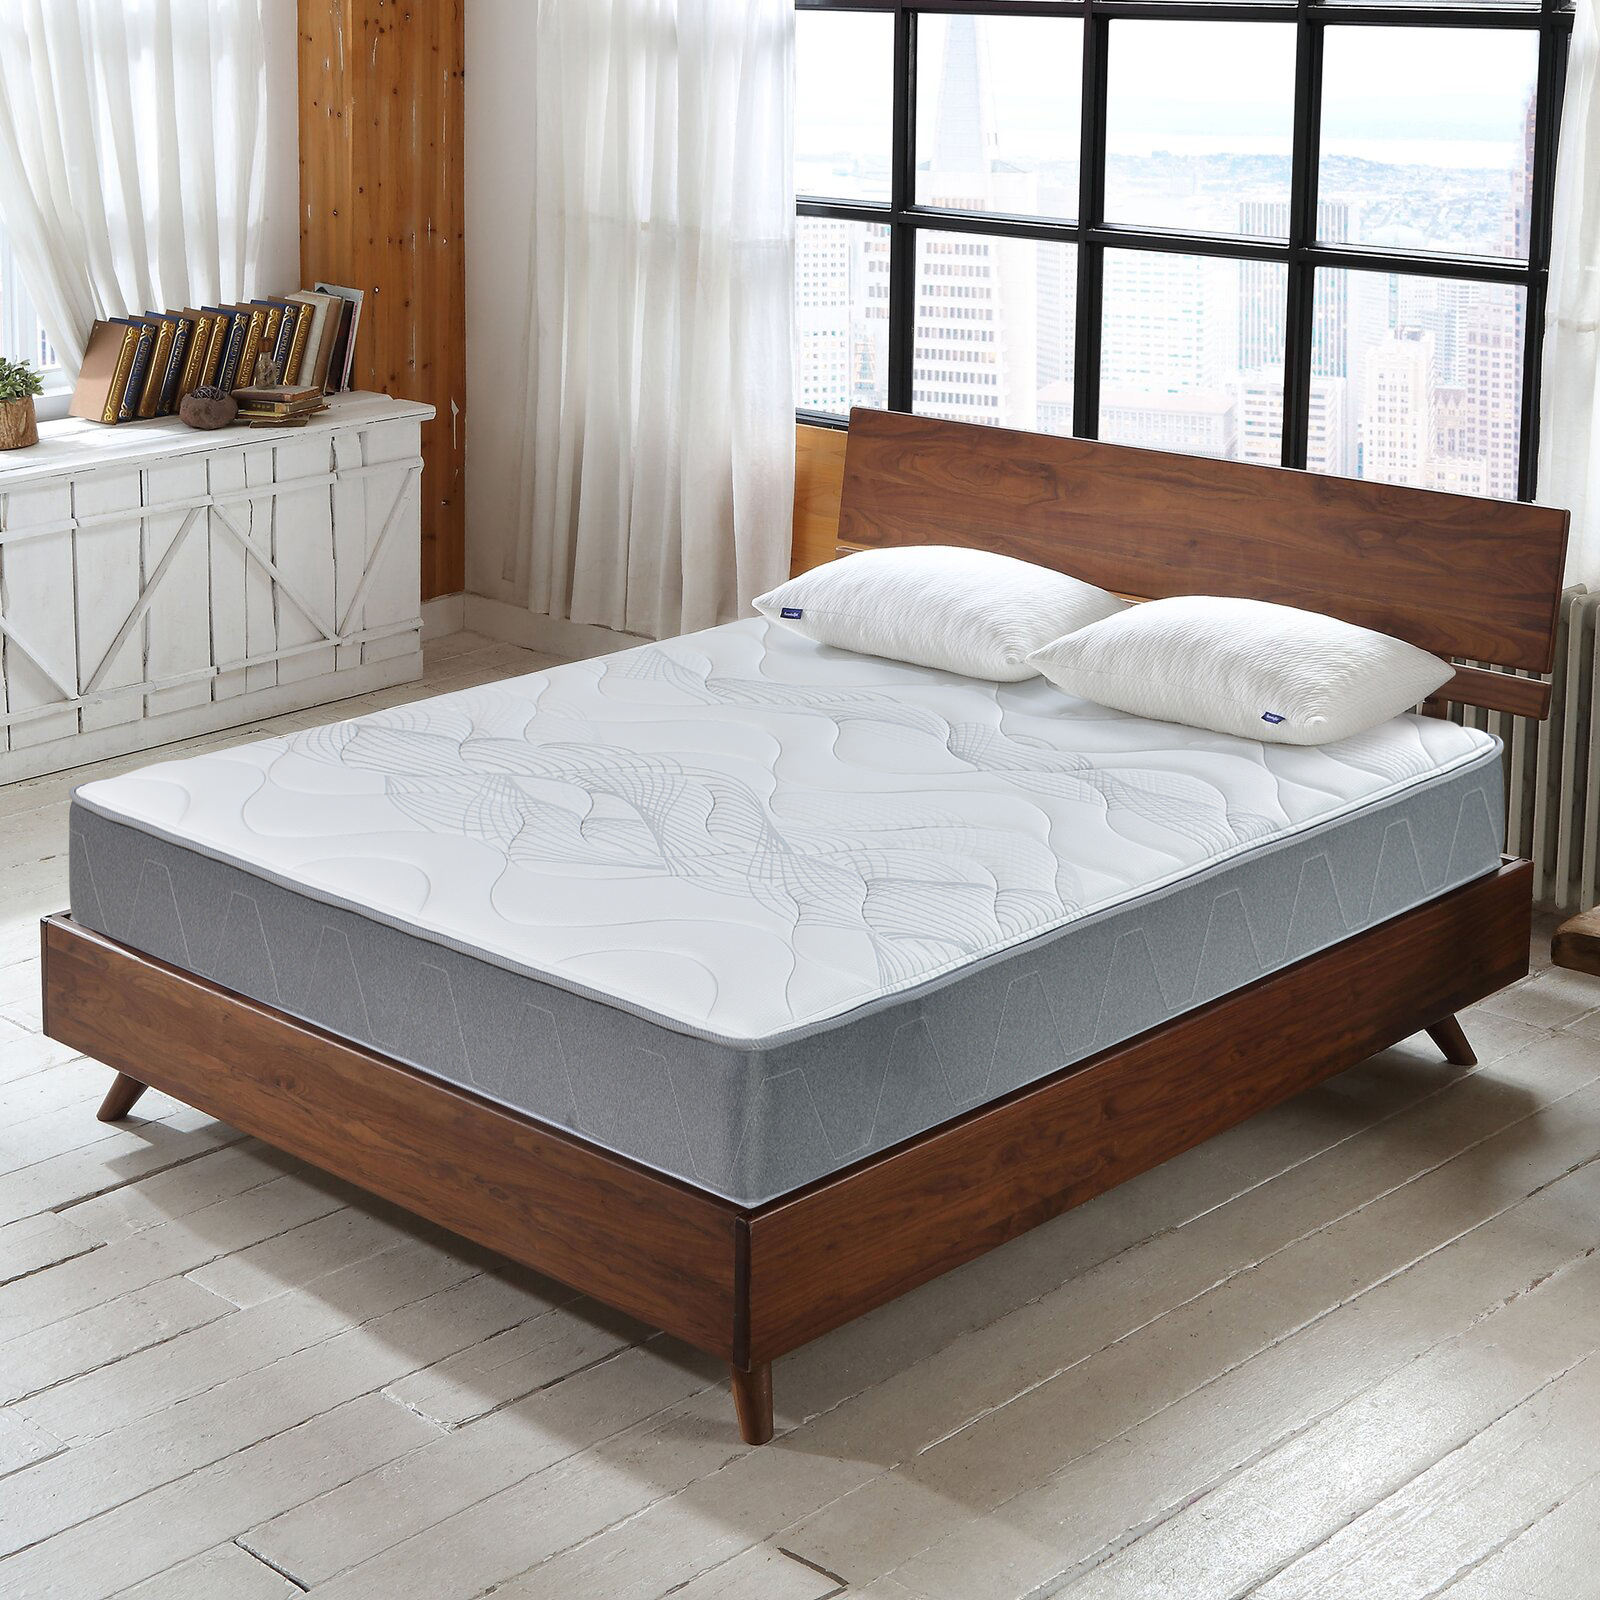 AIDI Chinese Luxury And Comfortable Used Hotel Mattresses Bed For Sale